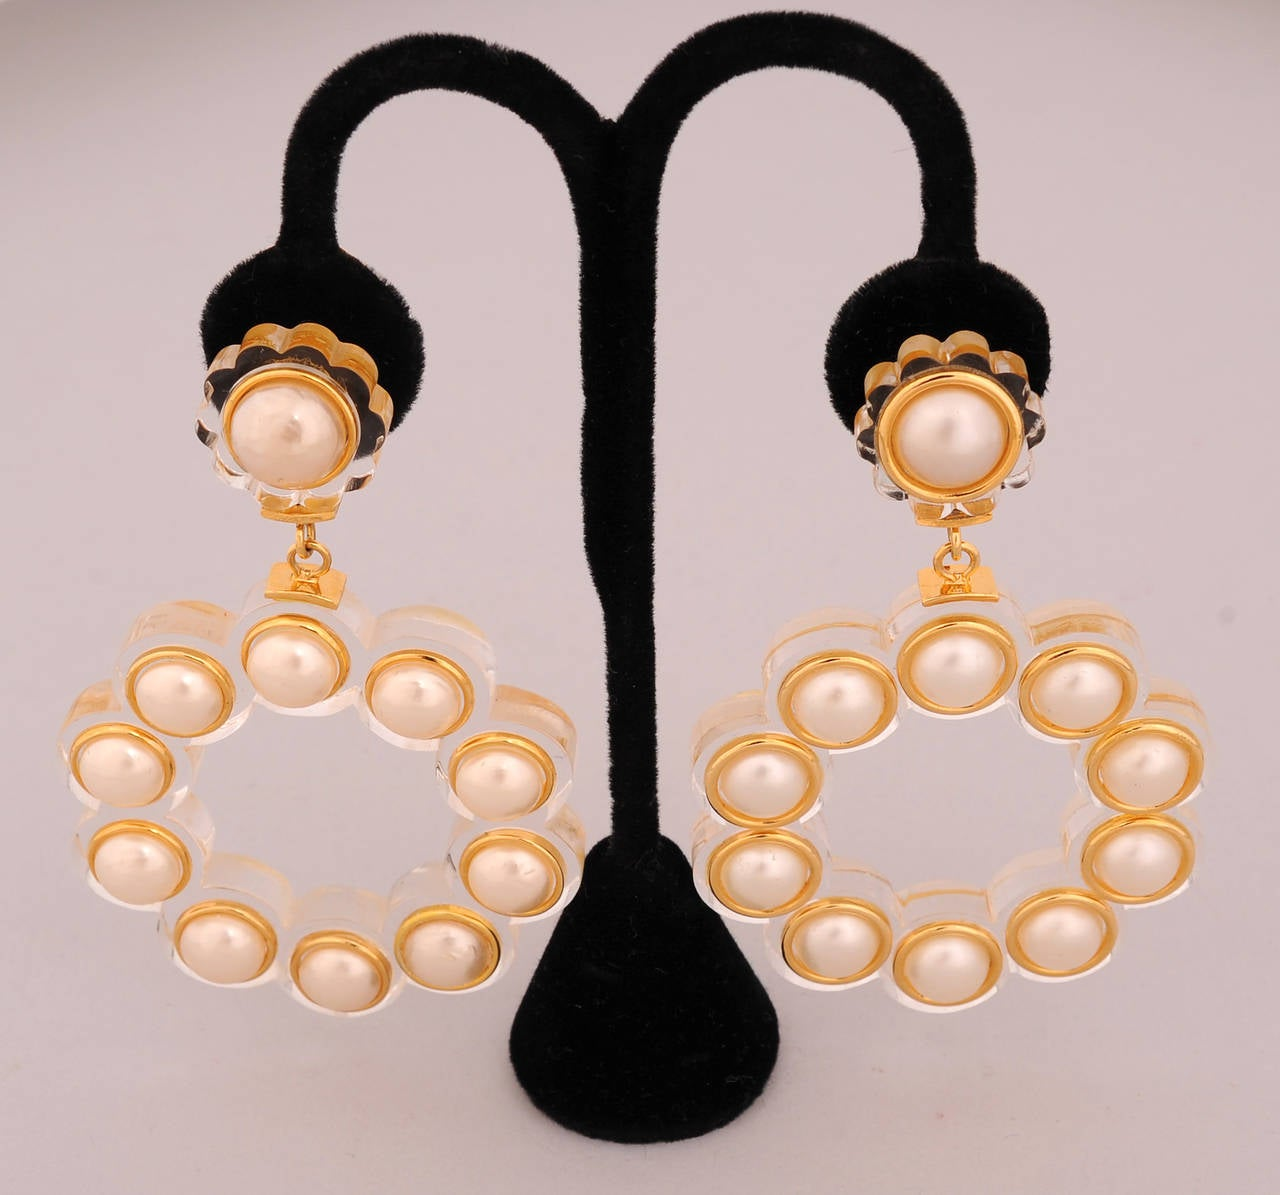 Chanel Runway Worn Lucite And Pearl Earrings For Sale At. Matil Chains. English Chains. Brass Plated Chains. Guy Italian Chains. 1k Gold Chains. Svg Chains. Braslate Gold Chains. Boys Over Flower Chains